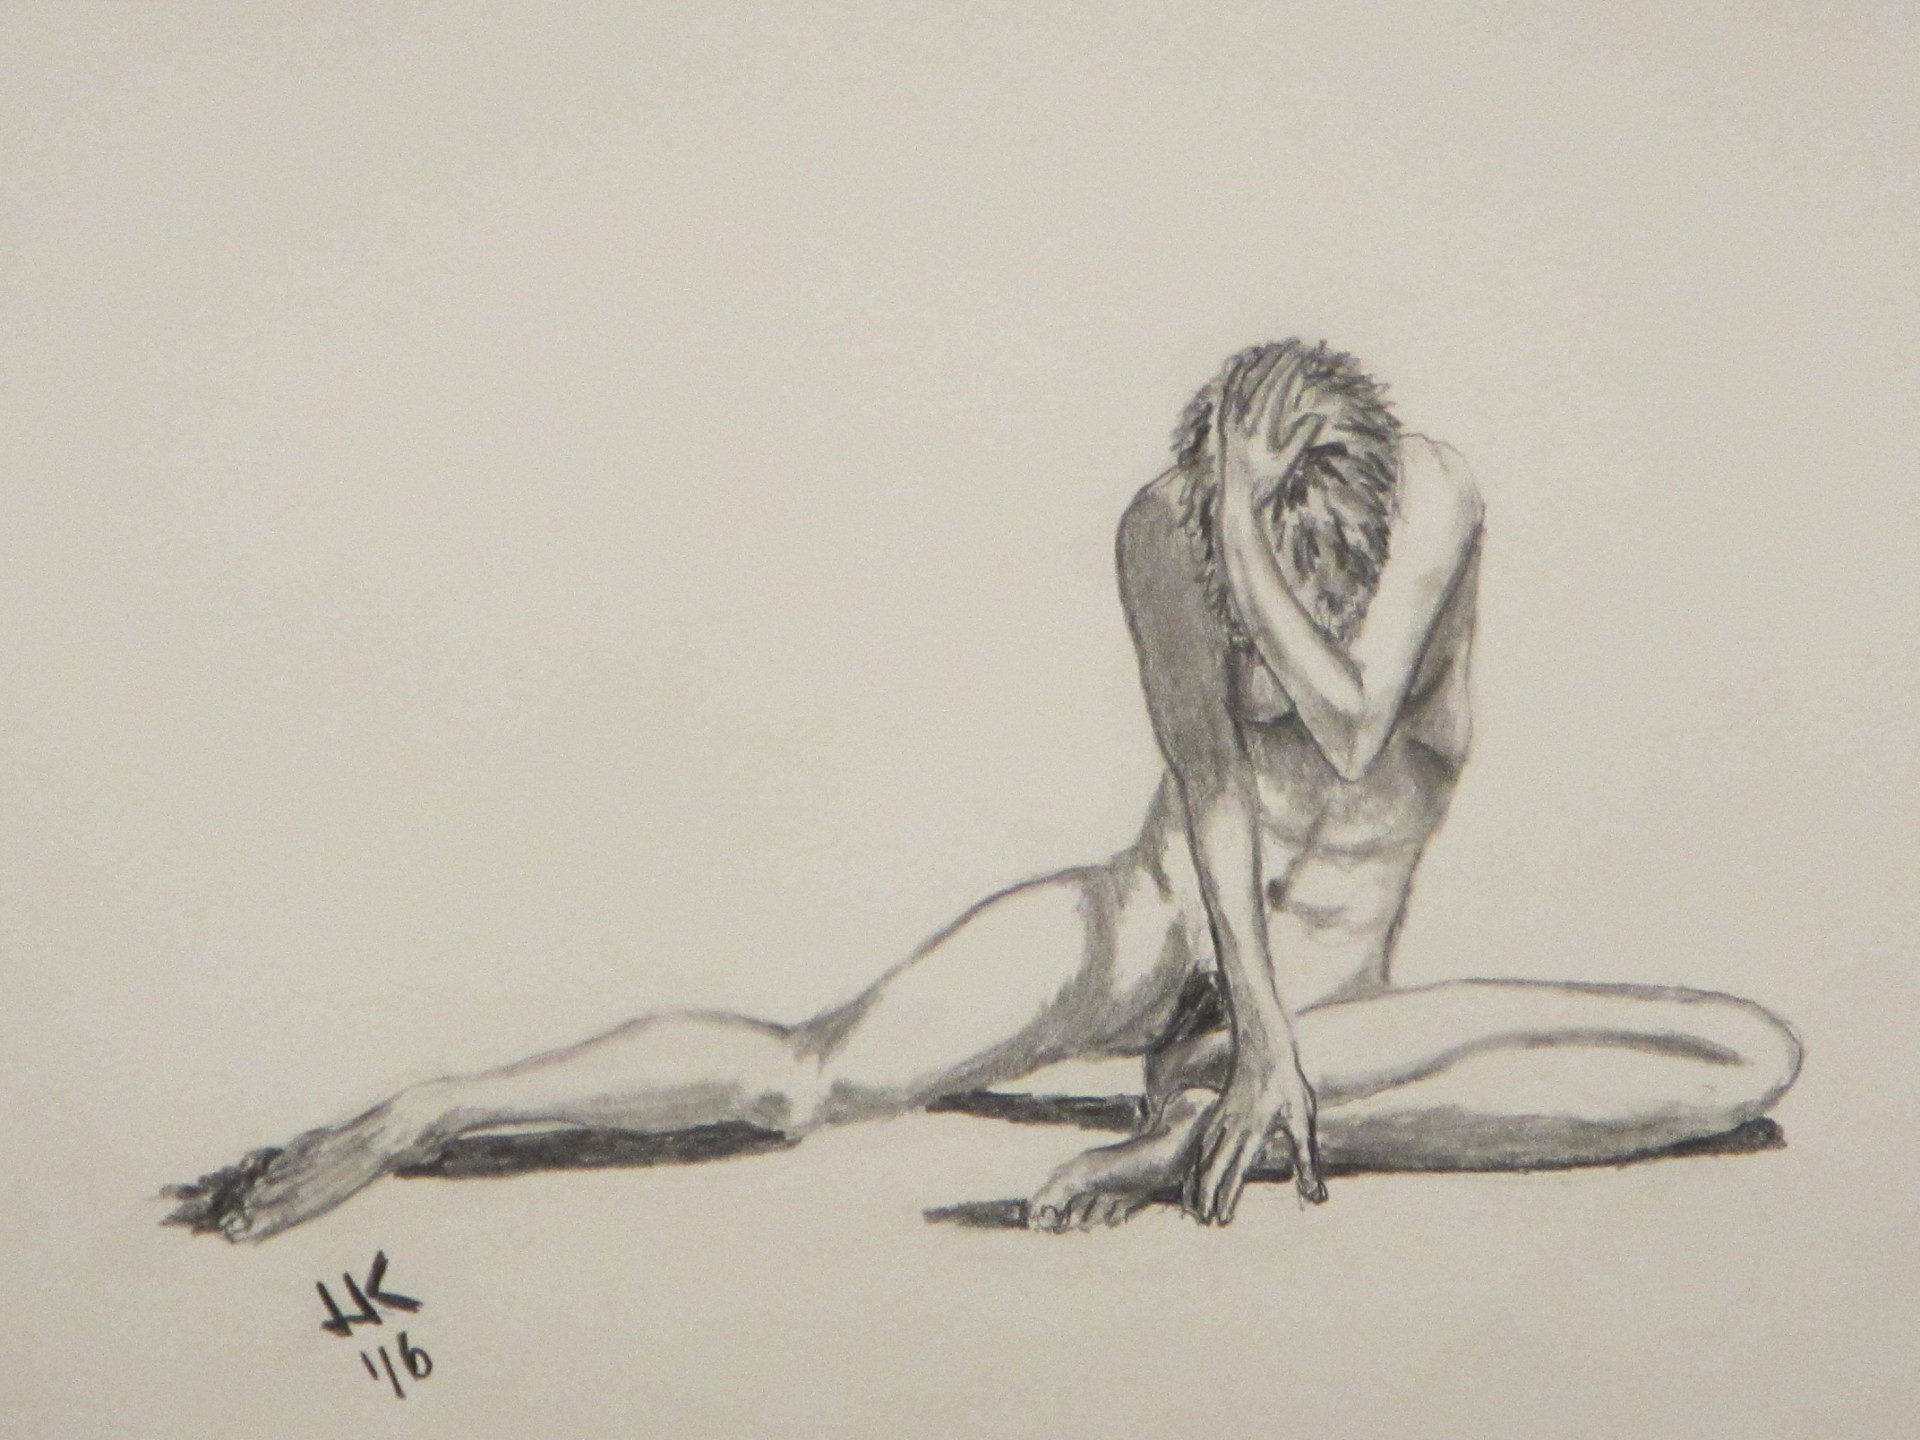 Nude woman in angst.